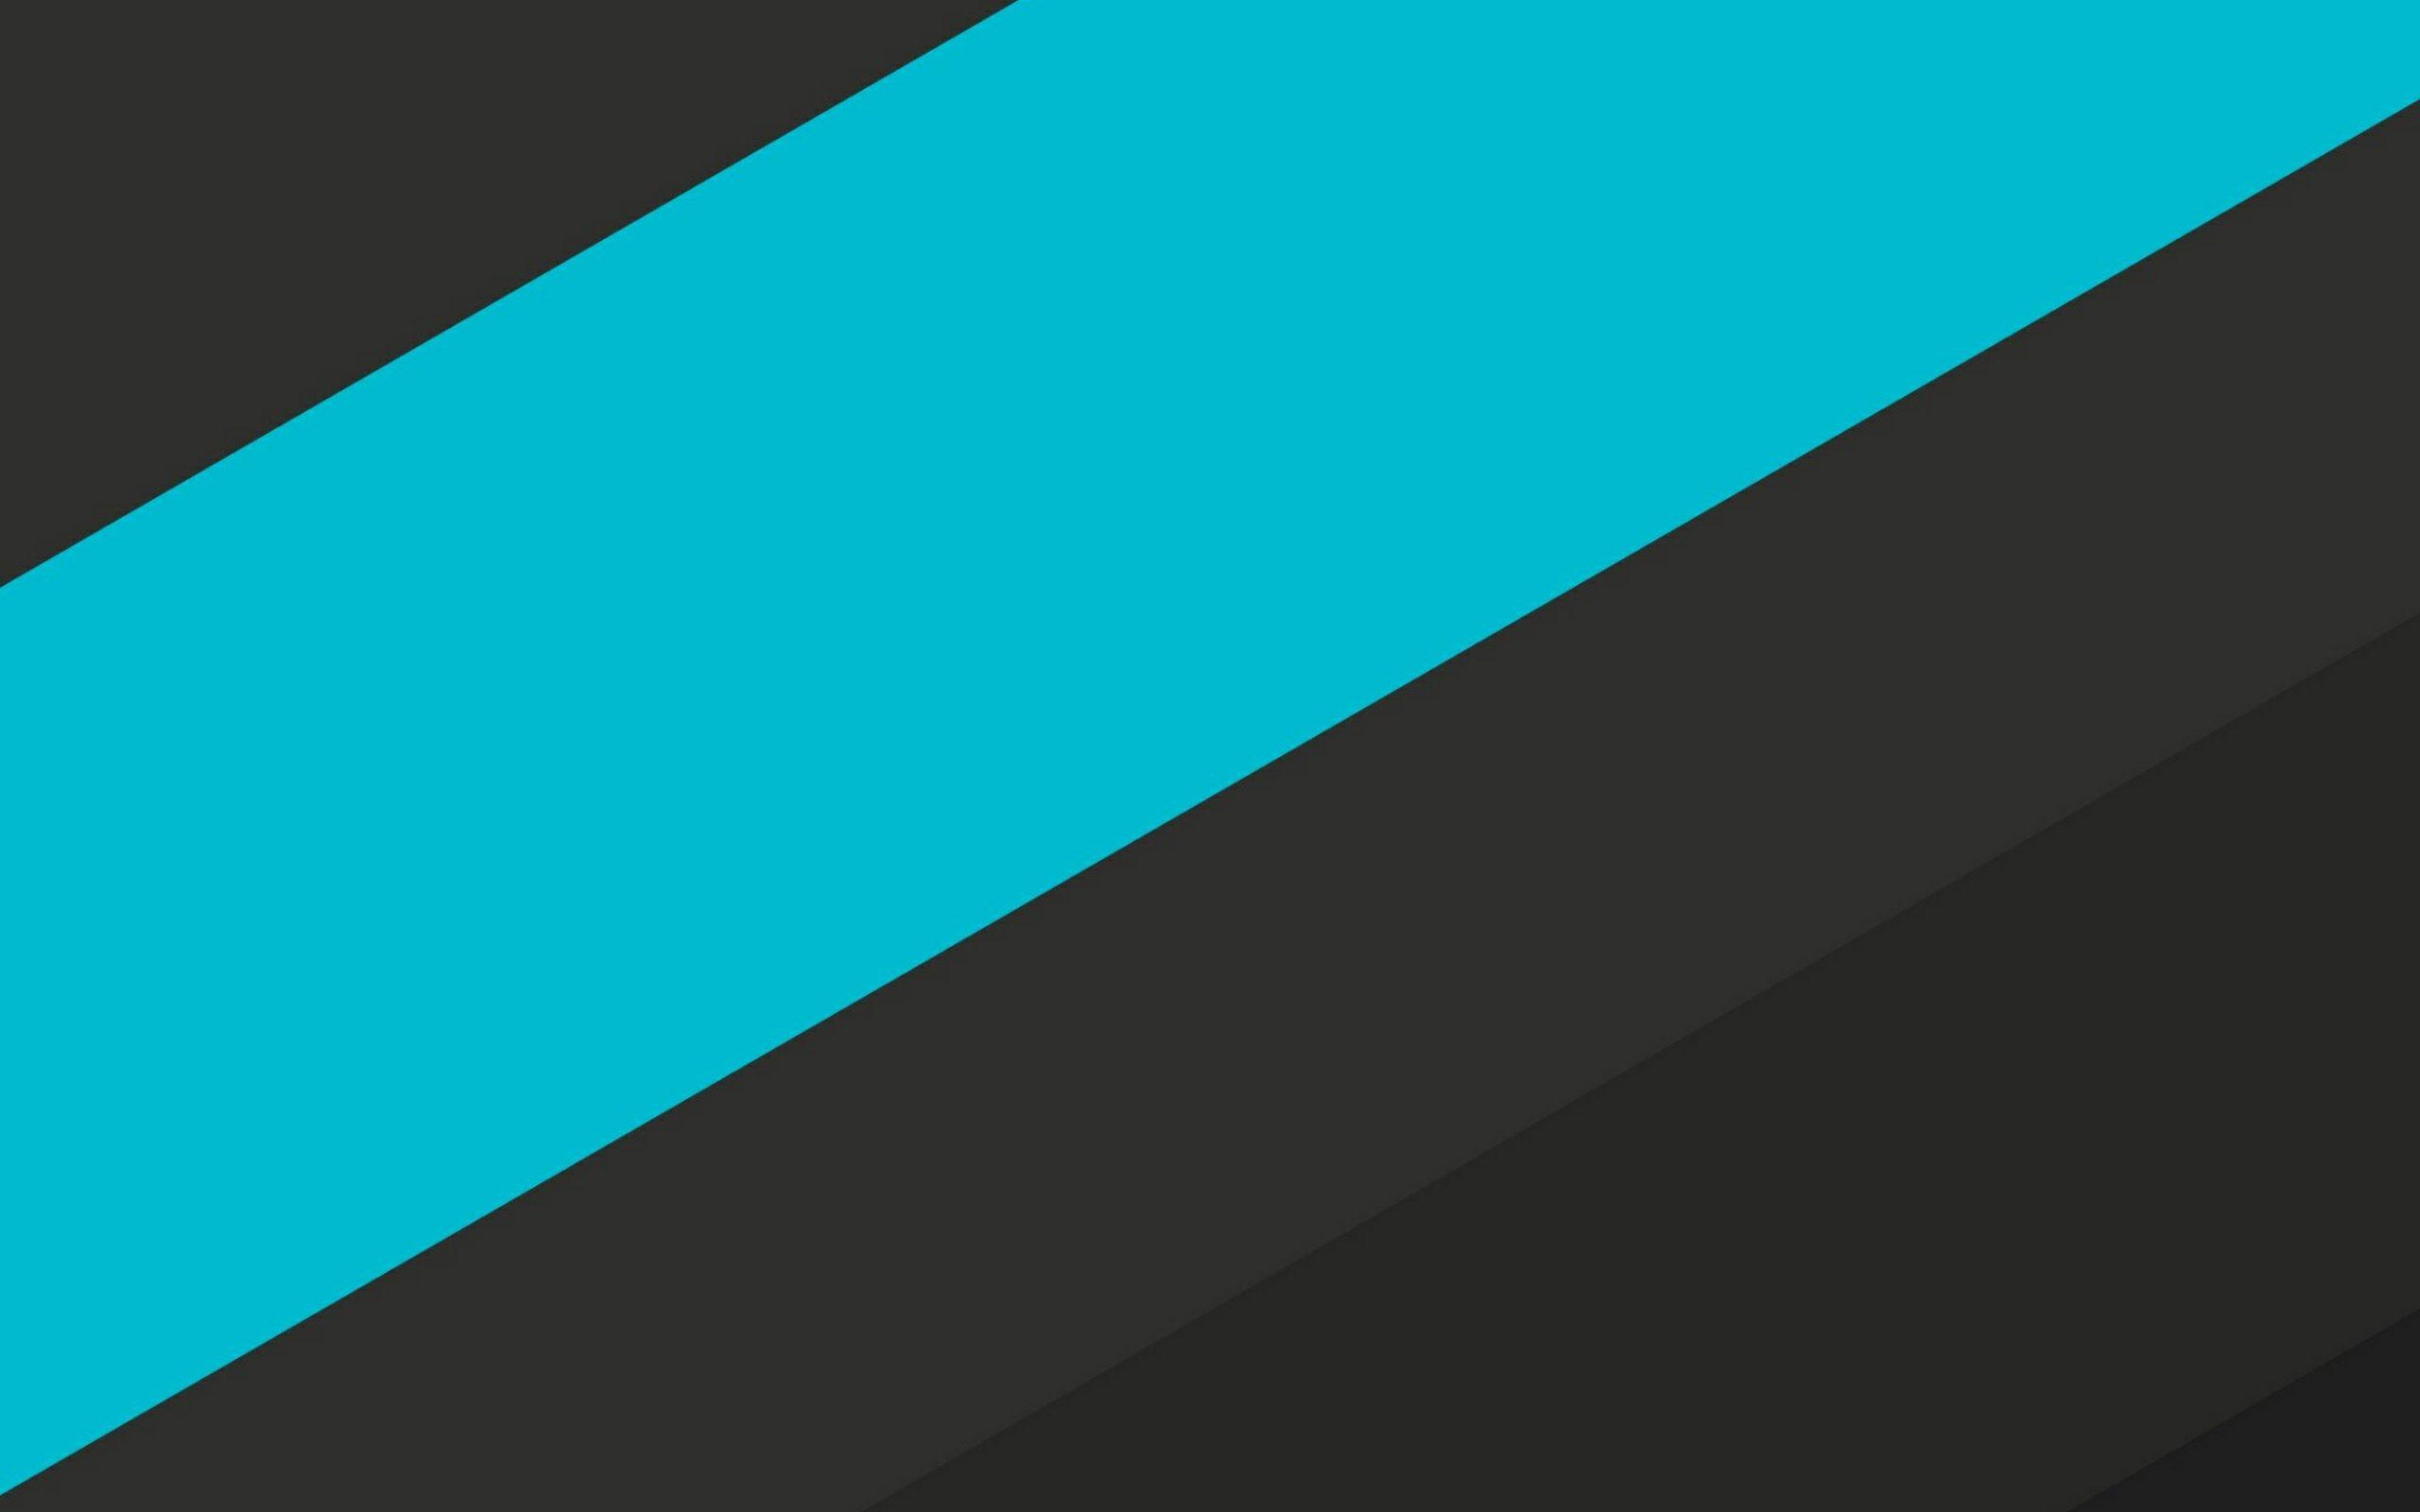 Google Material Design Wallpapers